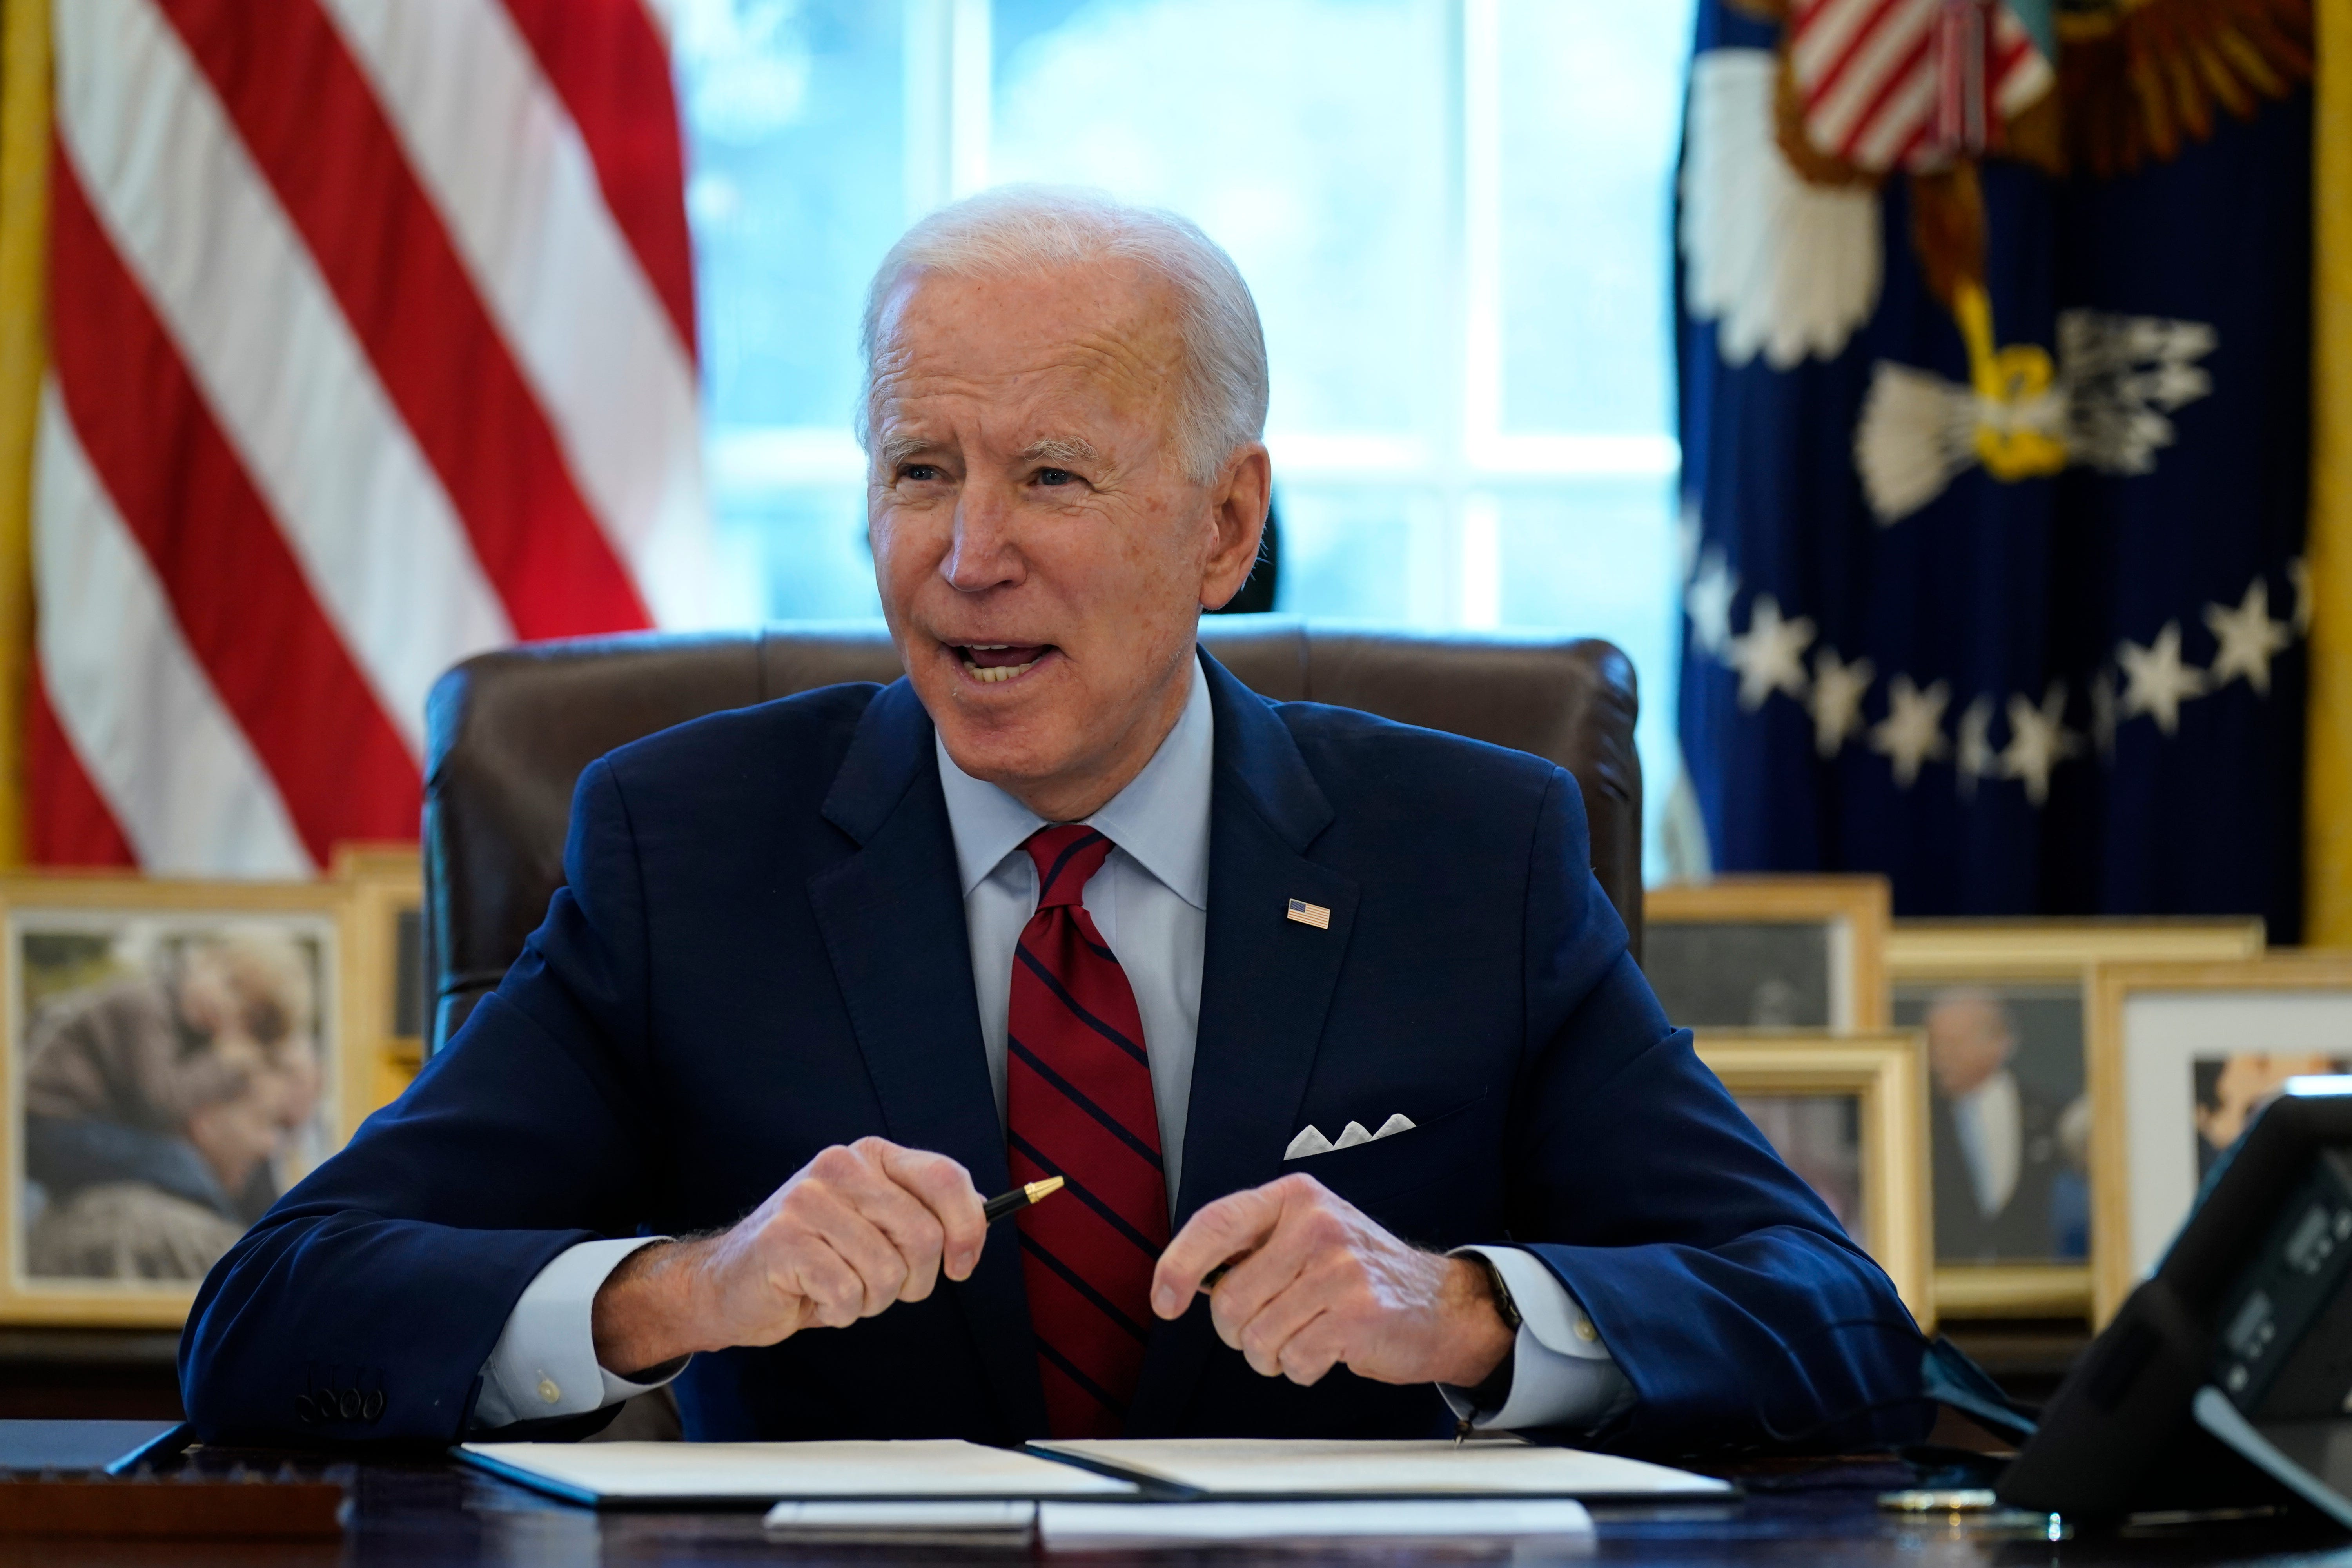 Biden's climate change orders take a sledgehammer to Western state economies: Barrasso